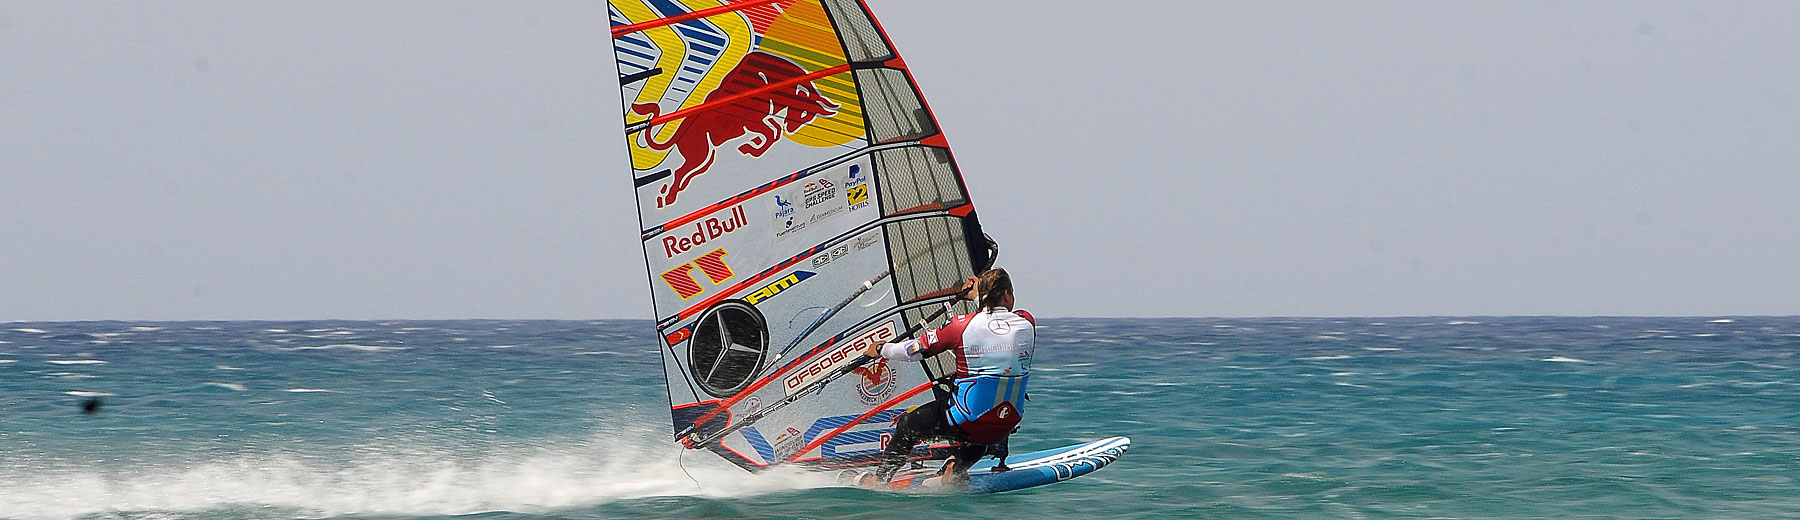 Bjørn Dunkerbeck - 42 x Windsurfing Champion